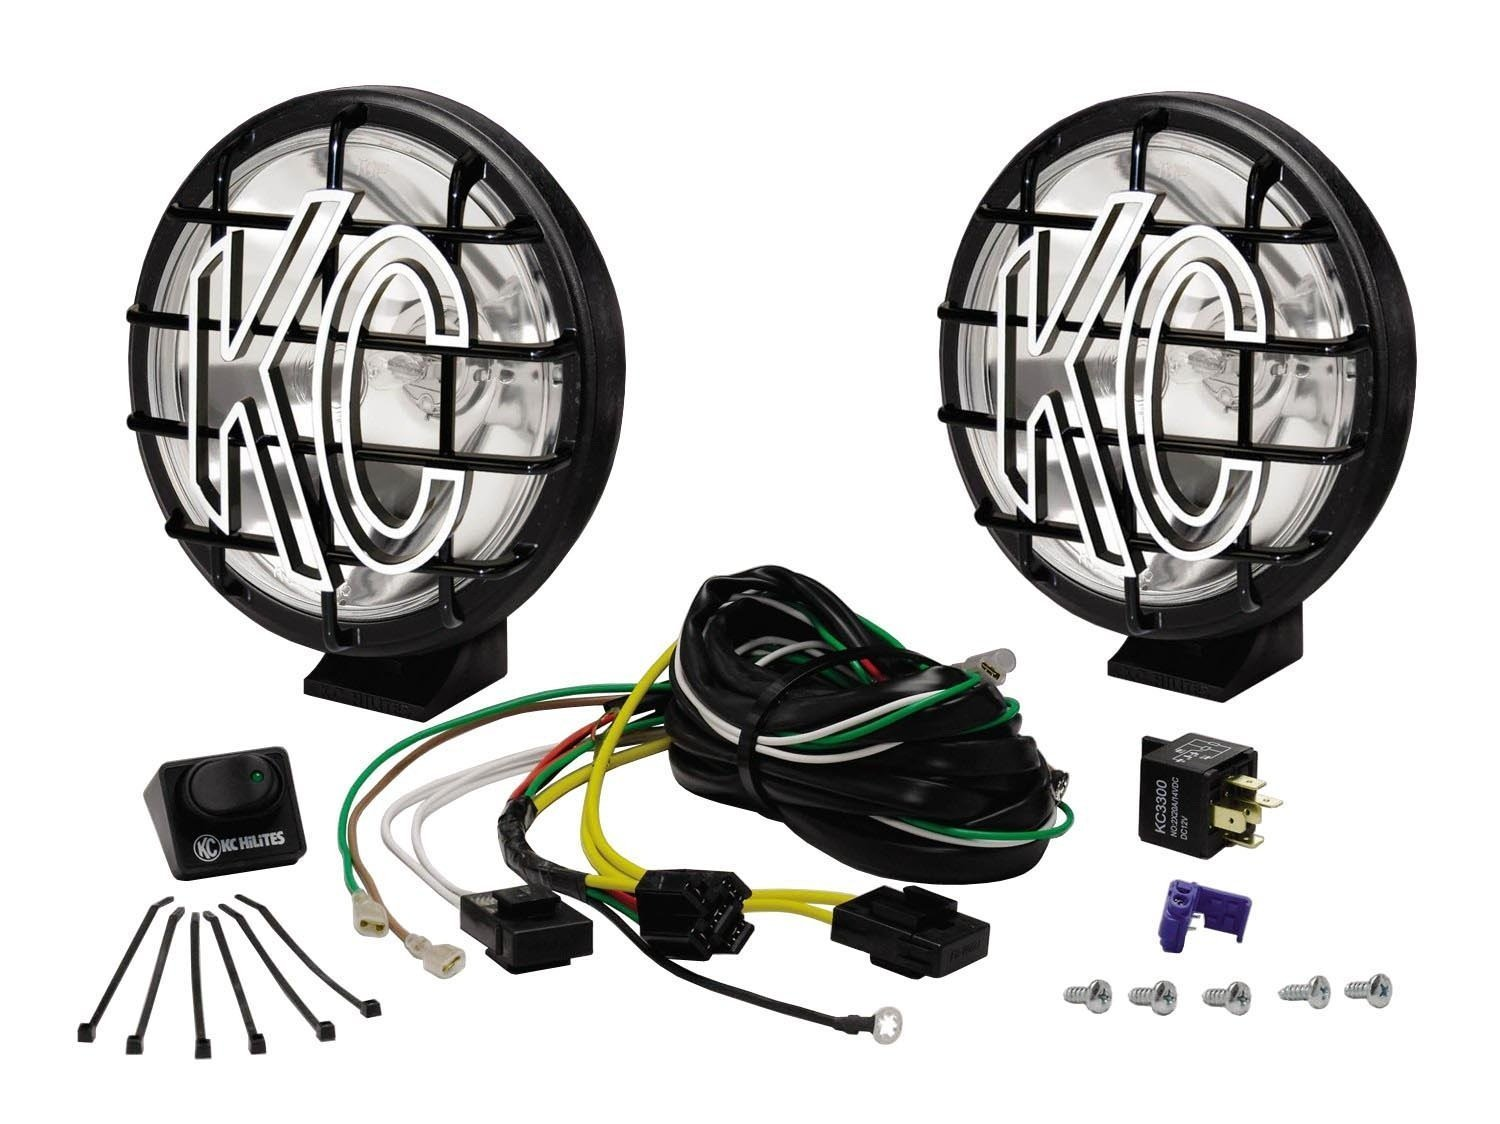 Wiring Kc Lights Jeep Just Another Diagram Blog Guide For Truck Amazon Com Rh Cherokee